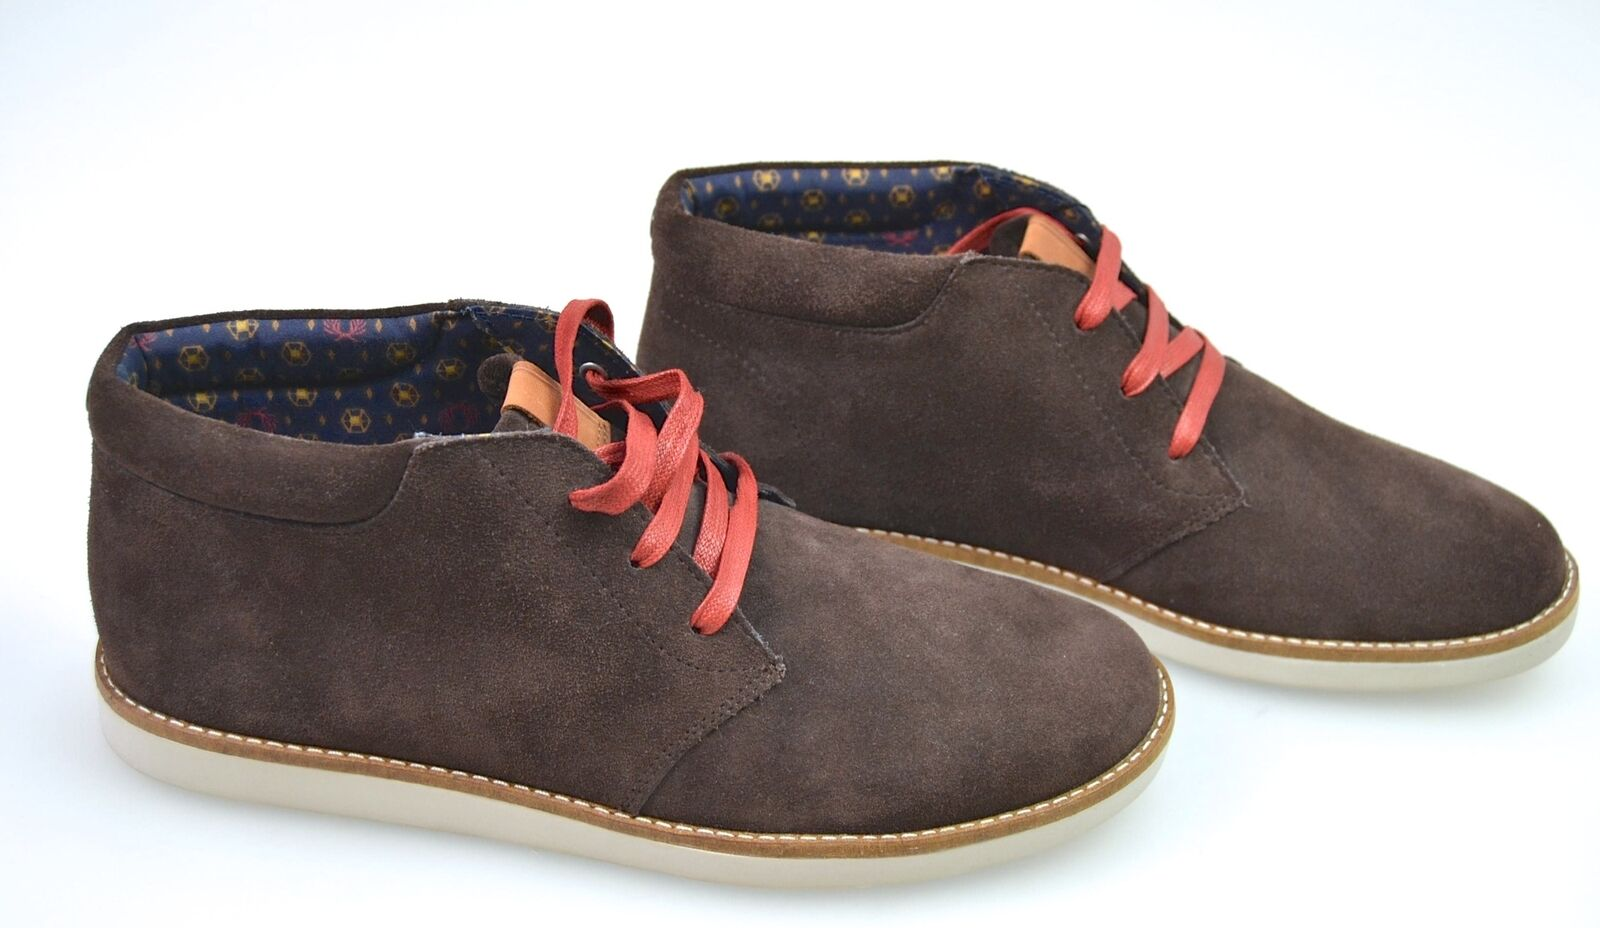 FRED PERRY MAN SNEAKER POLISH SHOES CASUAL FREE TIME SUEDE CODE B3142